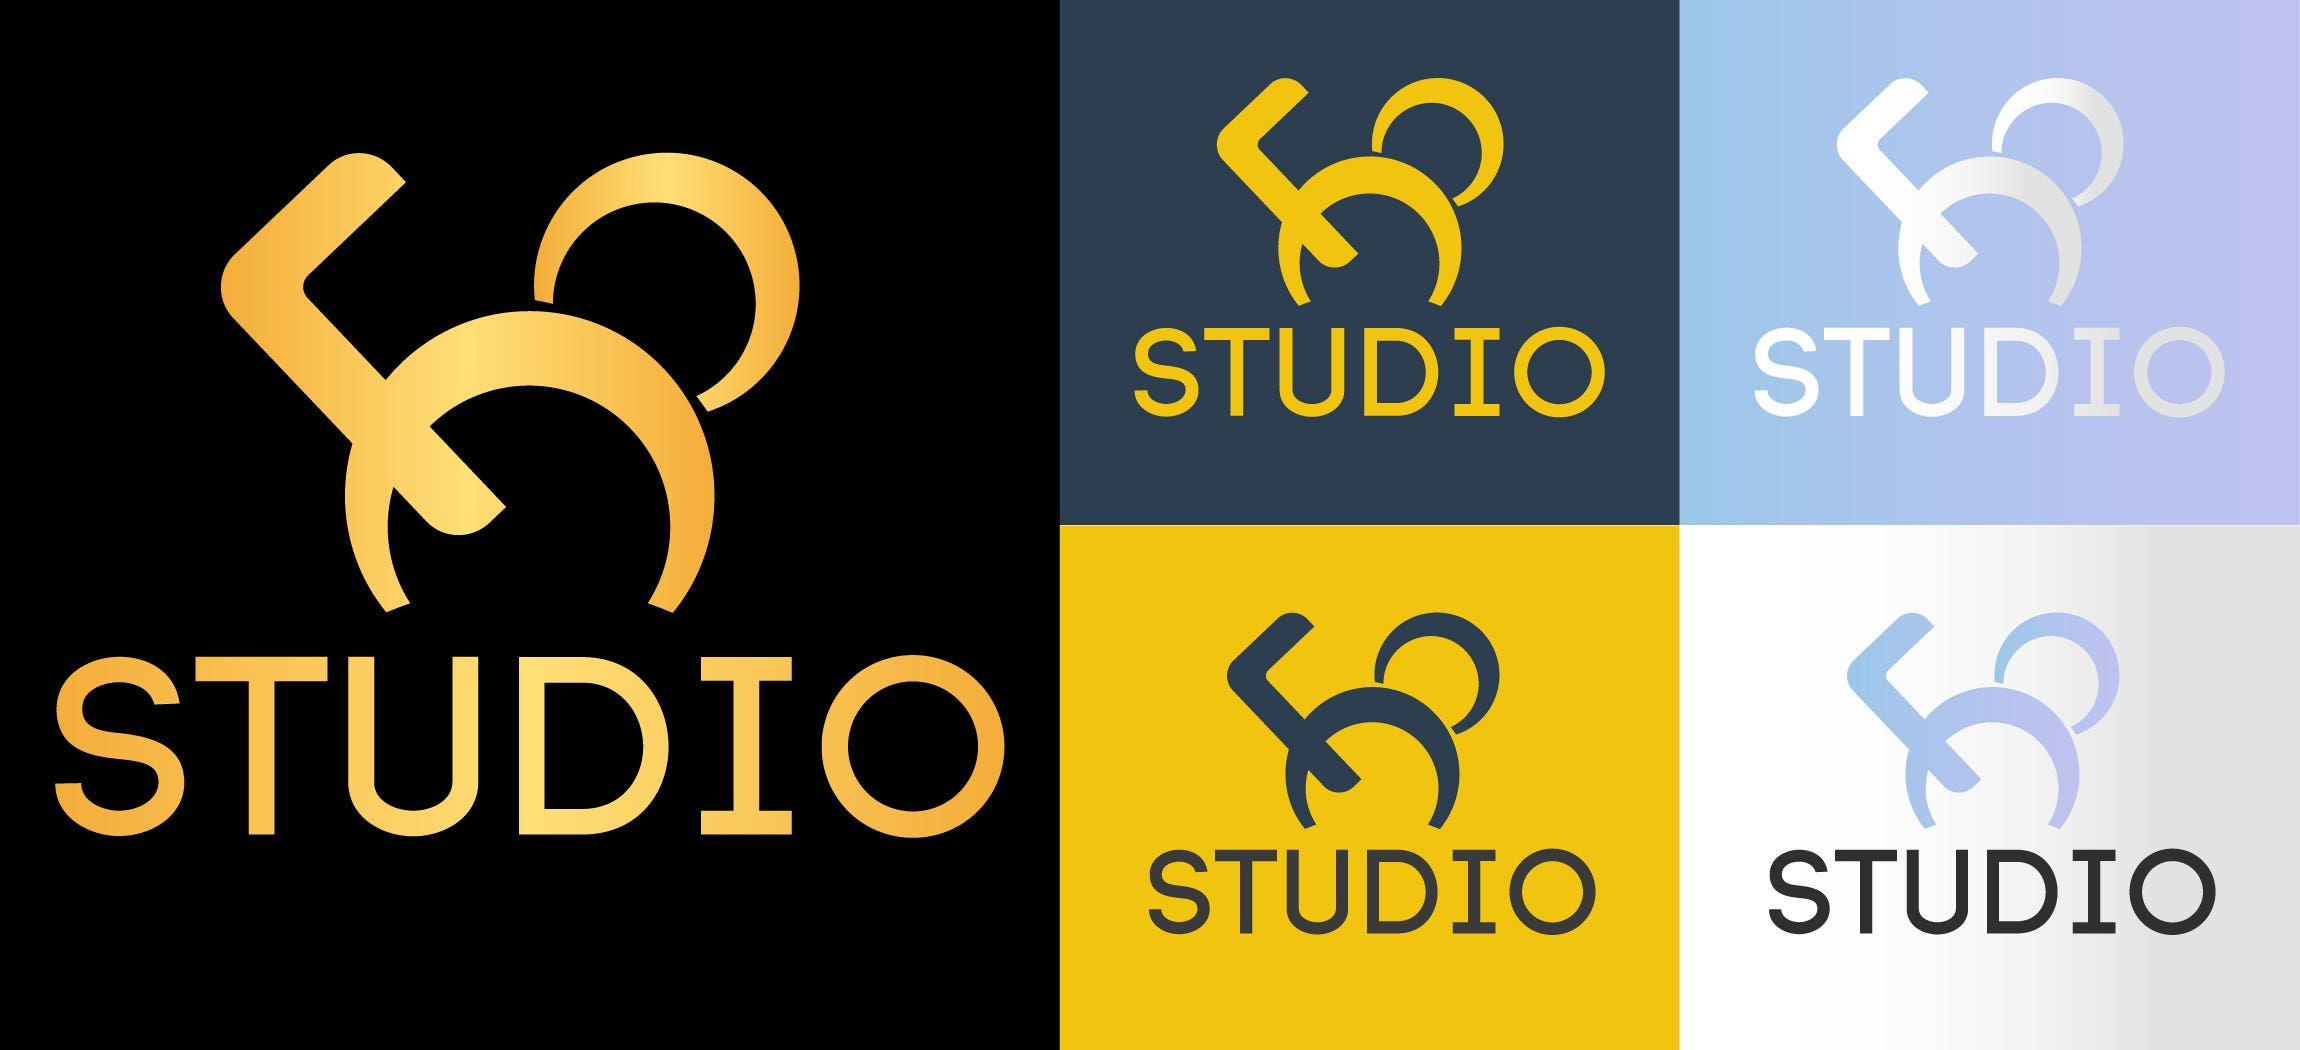 f8 STUDIO Logo Design - Angry mouse concept